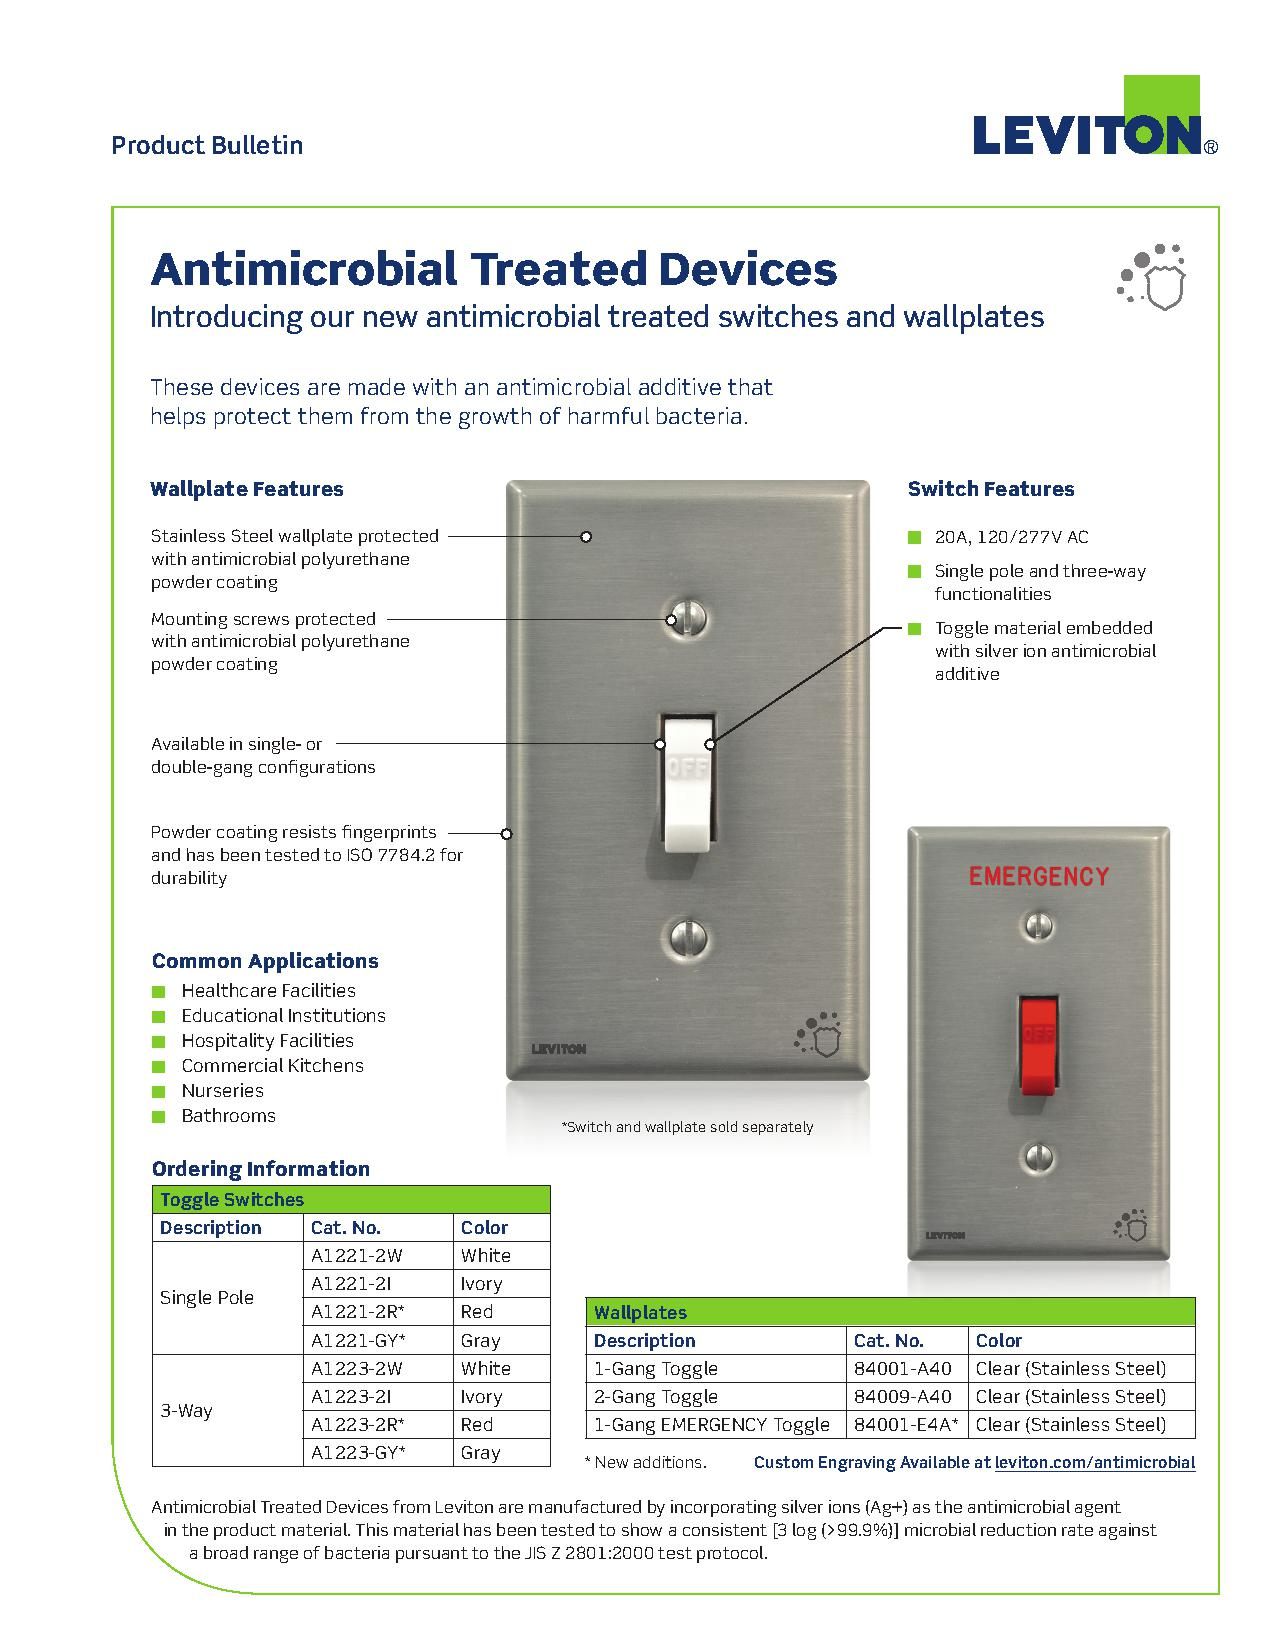 Leviton Antimicrobial Devices And Wall Plates | AJB Sales